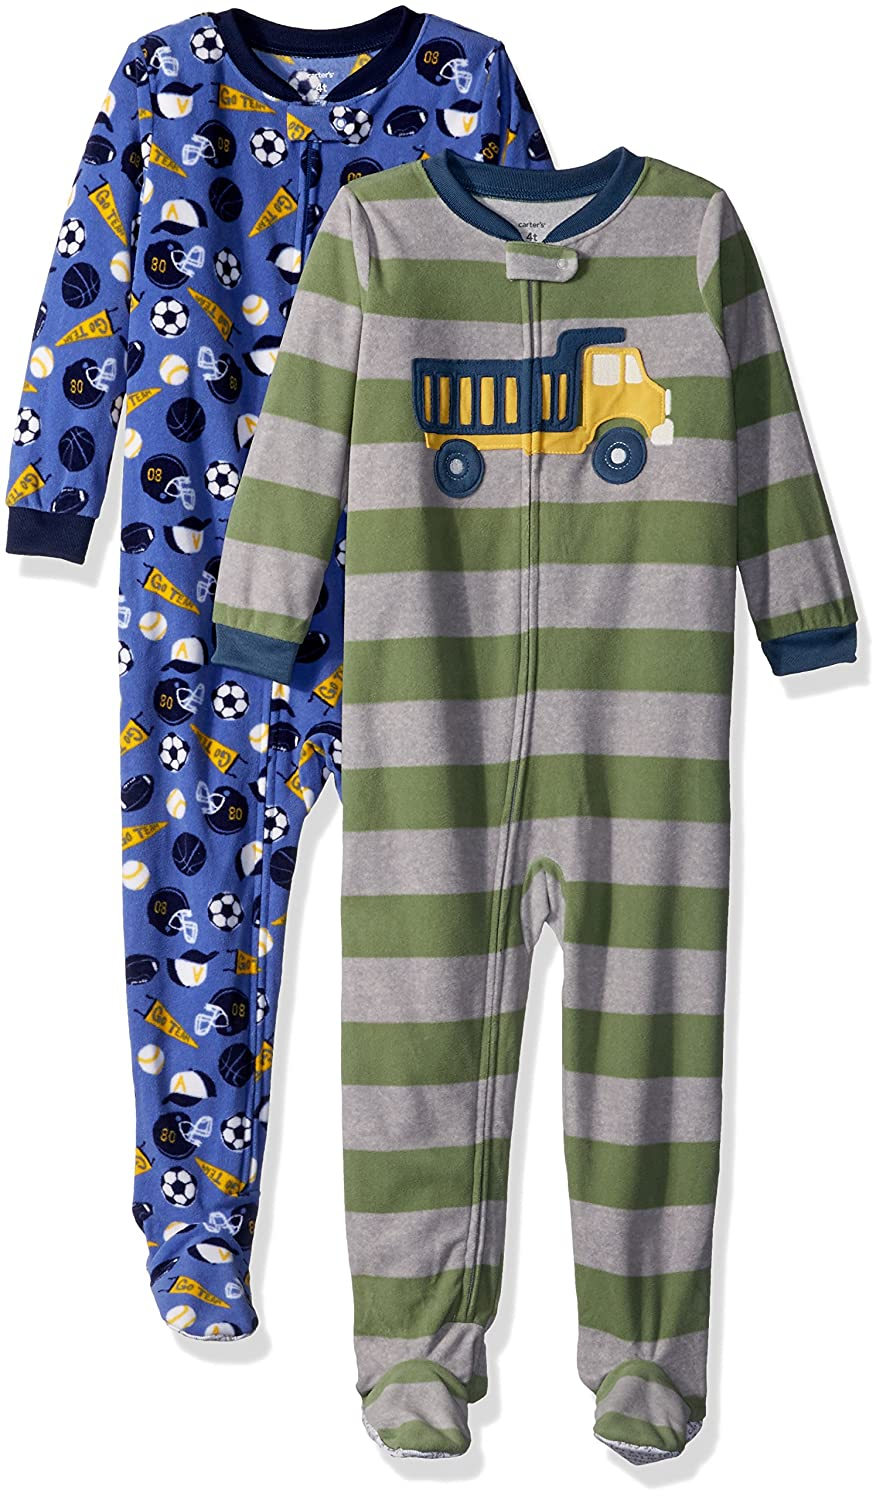 Carter's Baby and Toddler Boys' 2 Pack Fleece Footed Pajamas